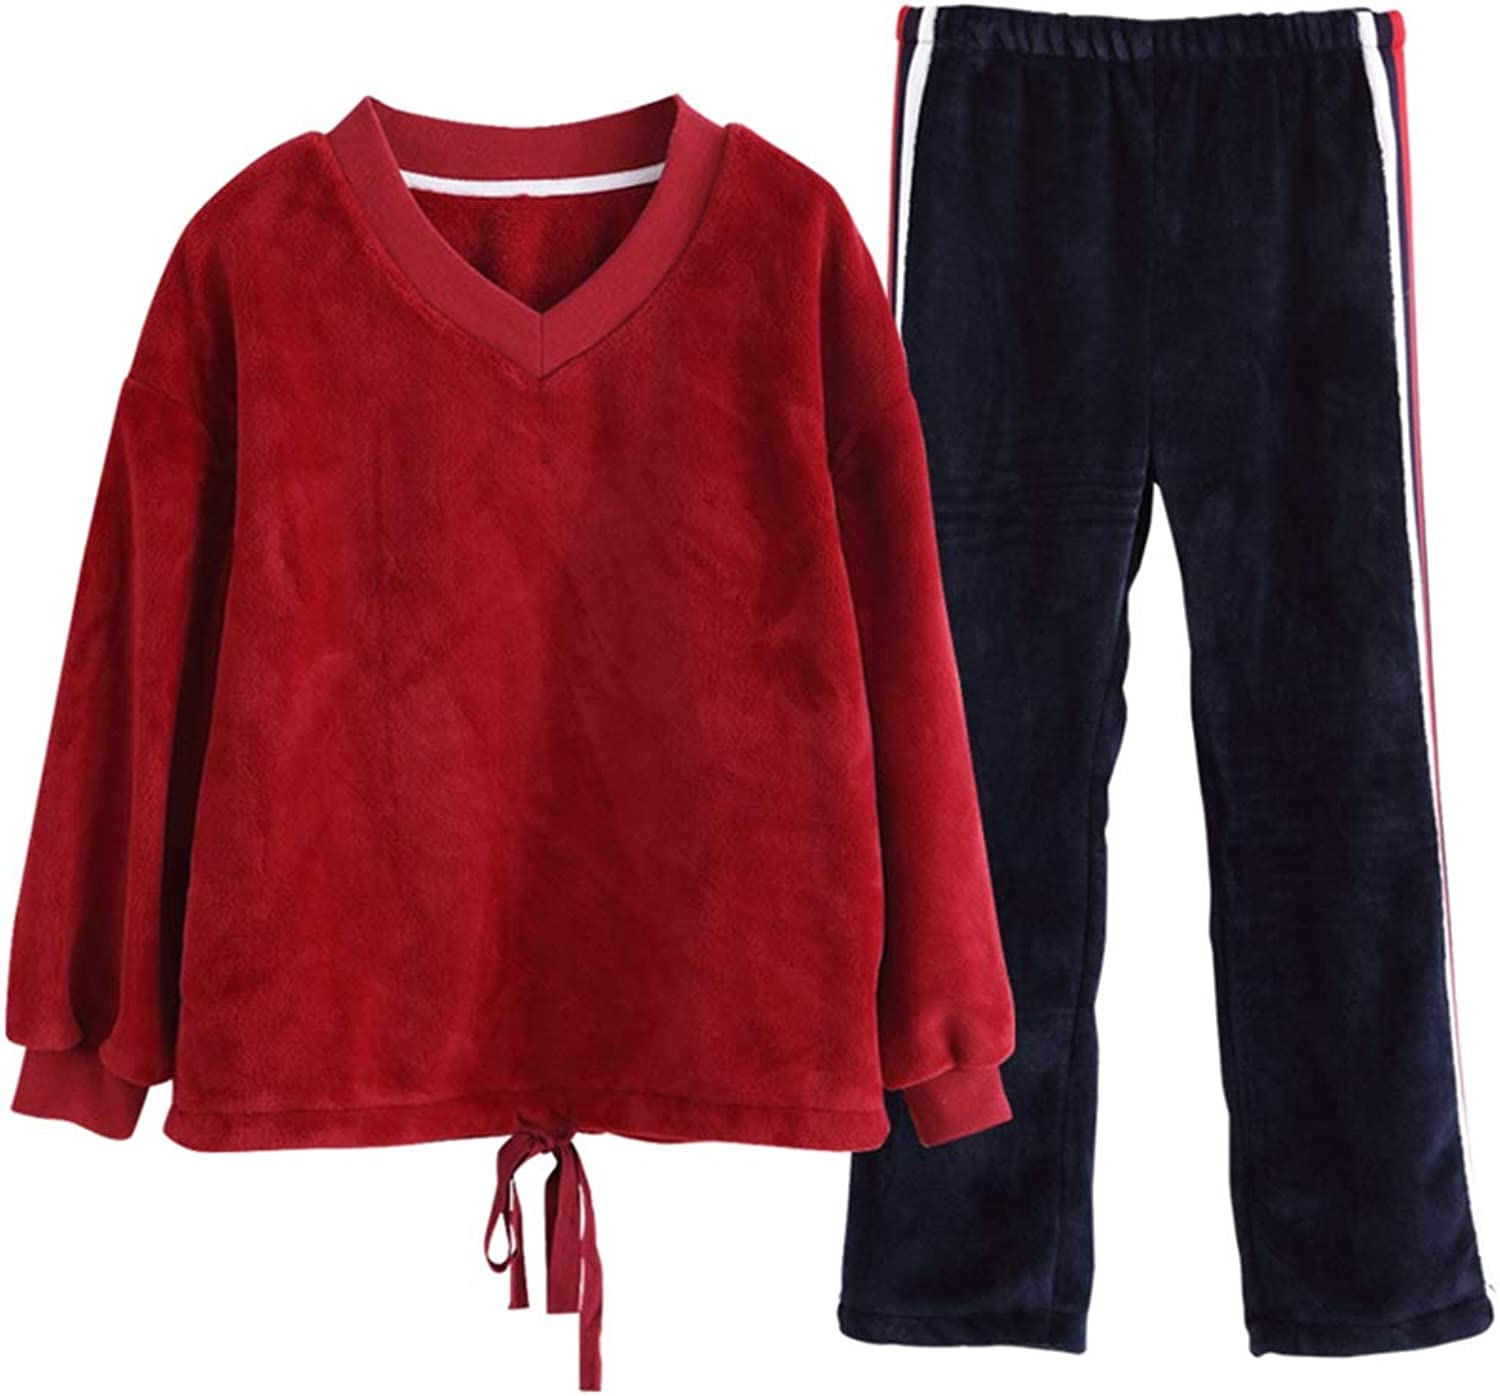 Sleepwear Wine red Nightgown Females Coral Velvet Nightwear Applicable for Autumn and Winter Solid color Pajamas for Girls Pajama Sets (color   Wine Red, Size   M)